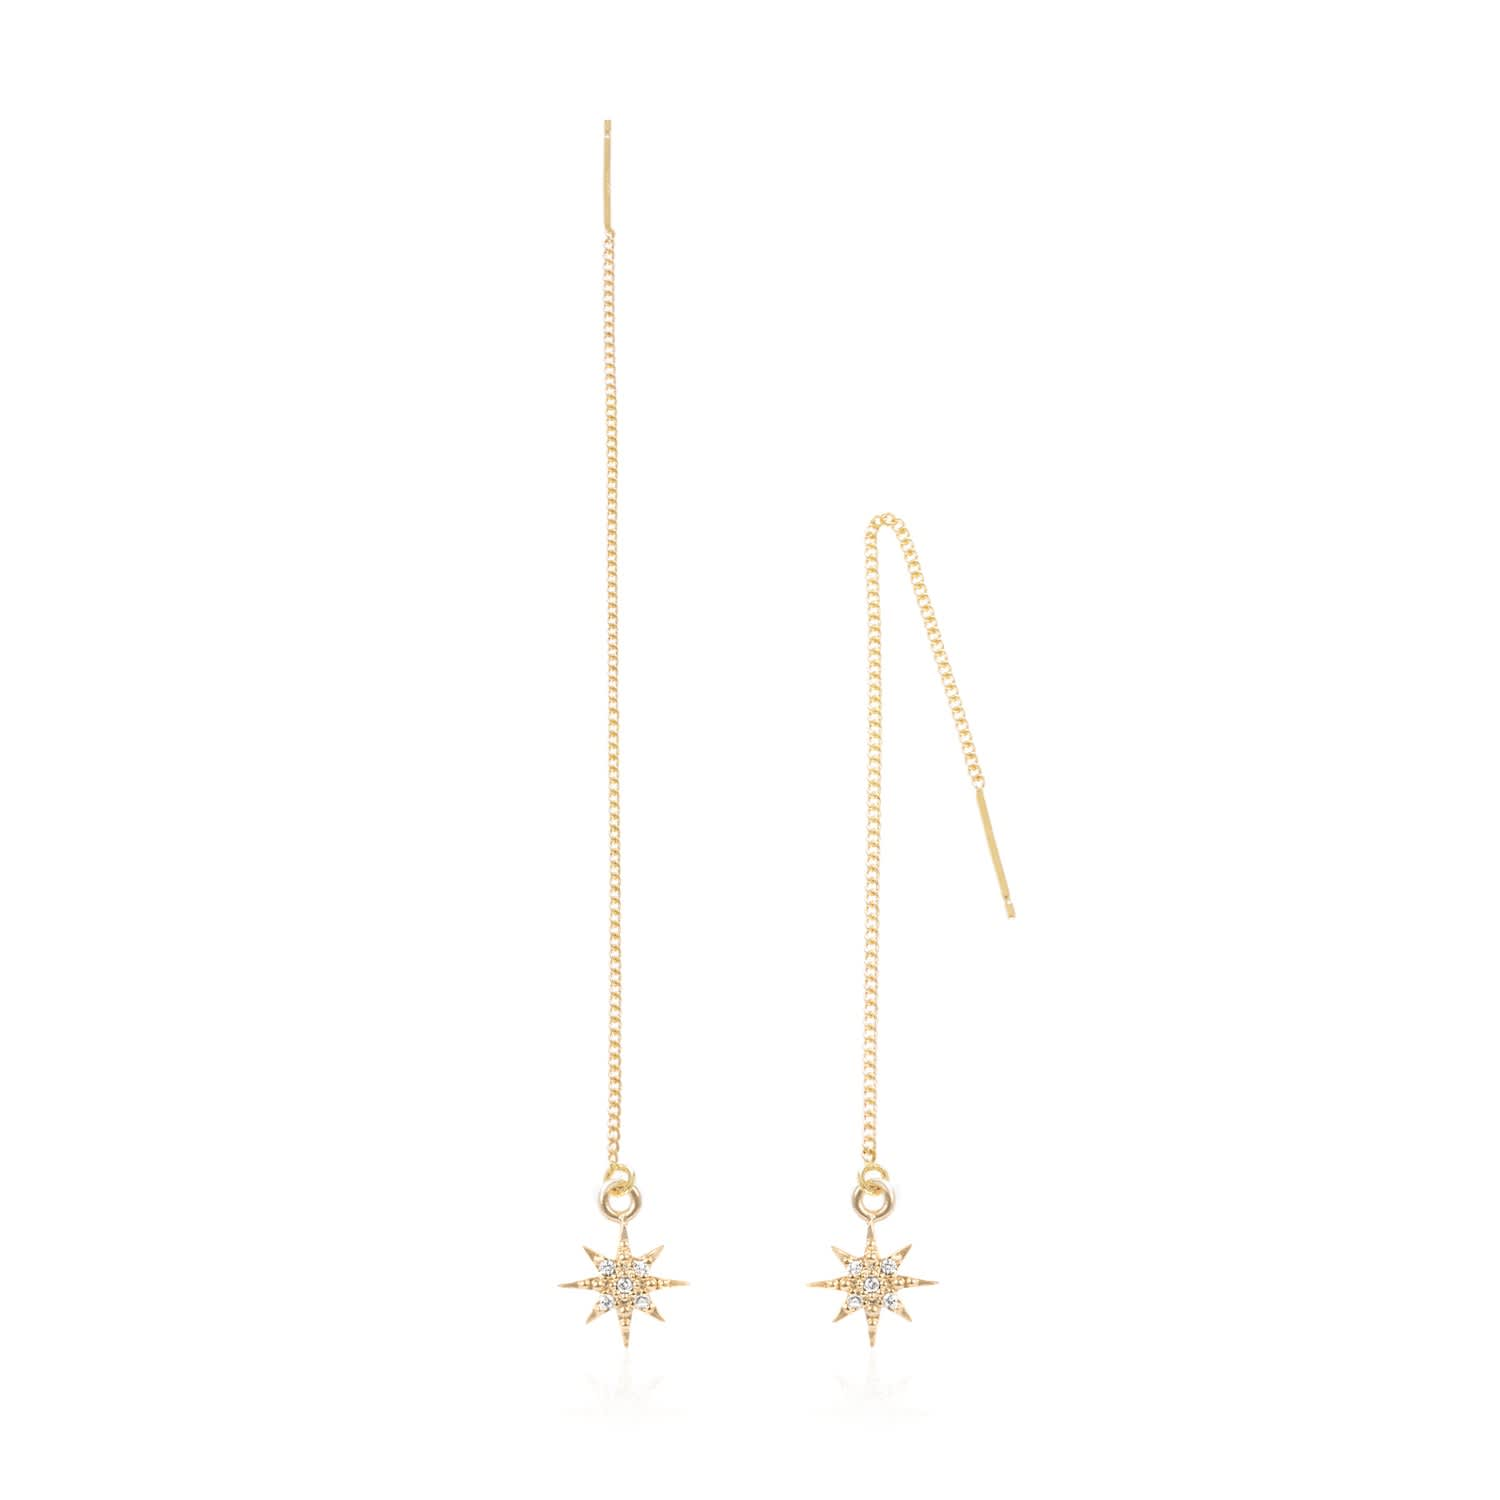 56e8e14098d8e Star Chain Earrings by C.J.M